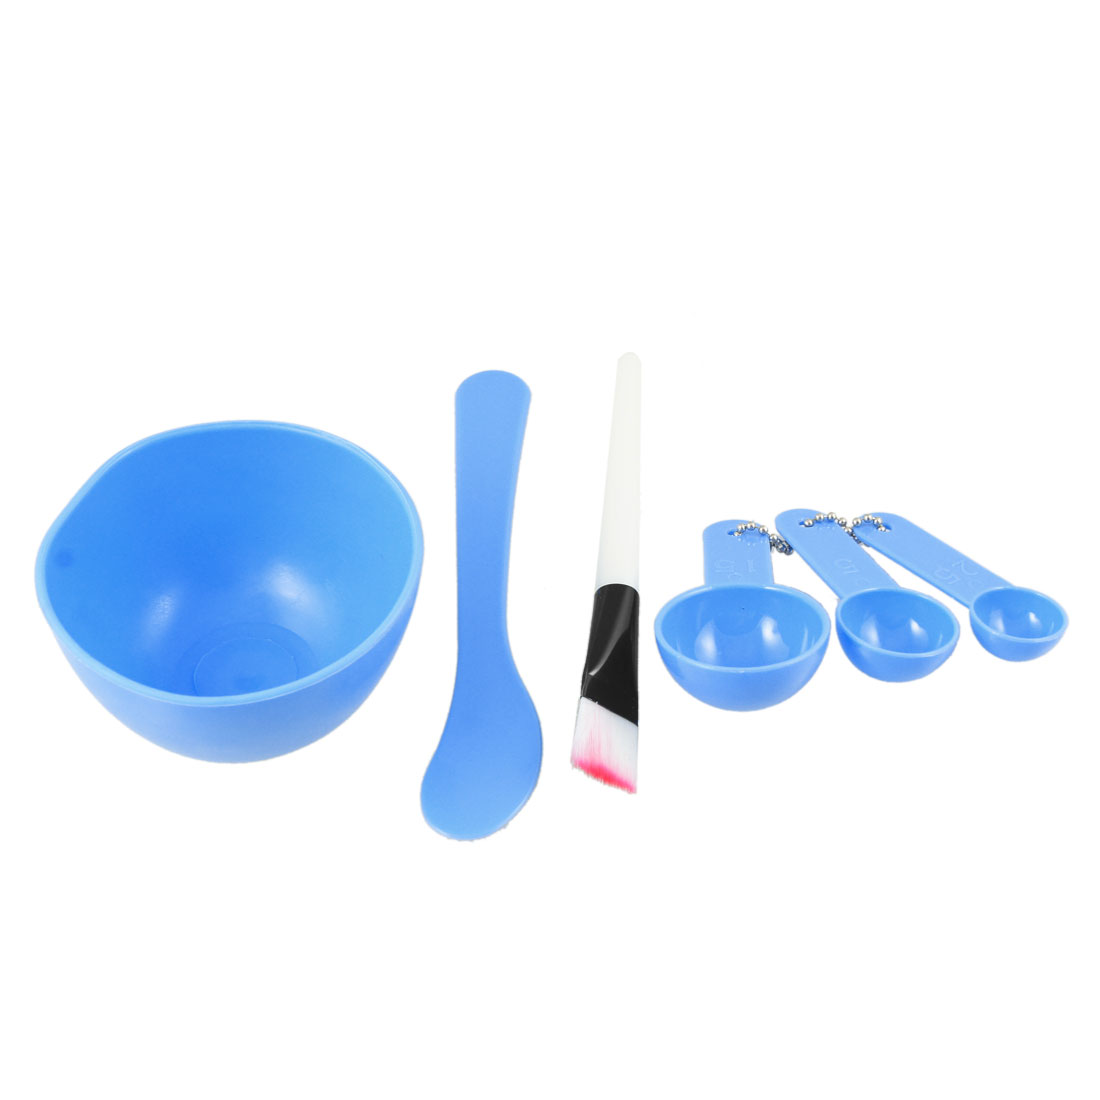 Lady Blue Plastic 4 in 1 DIY Facial Beauty Mask Bowl Beauty Cosmetic Set